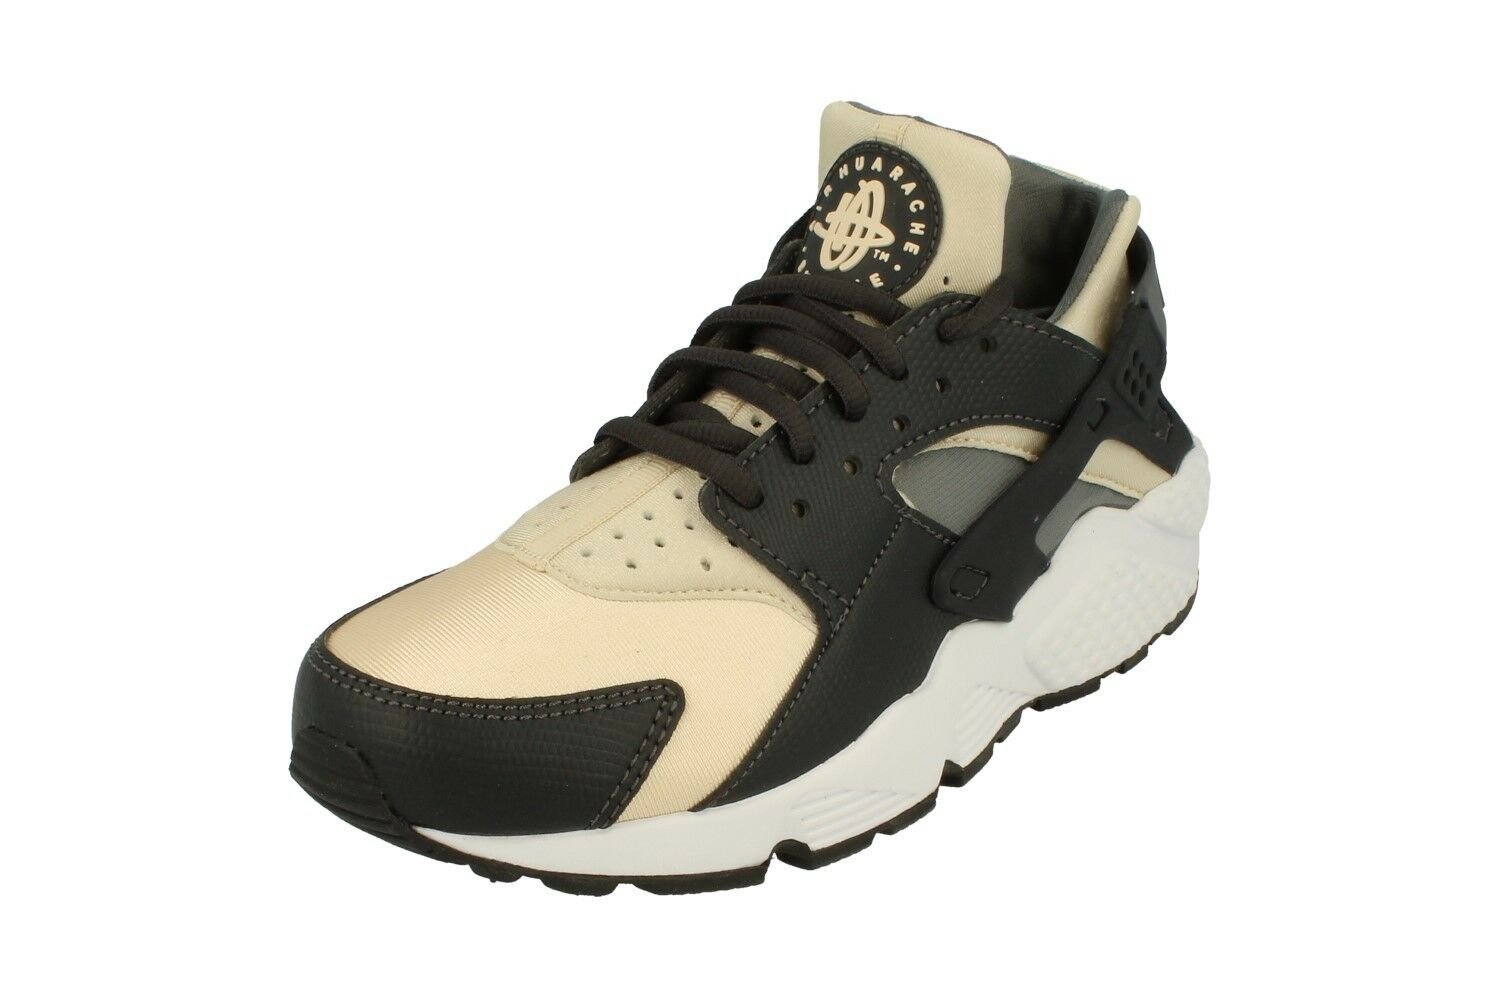 Nike Air Huarache Baskets Run Wo Hommes Running Trainers 634835 Baskets Huarache Chaussures 019 851684